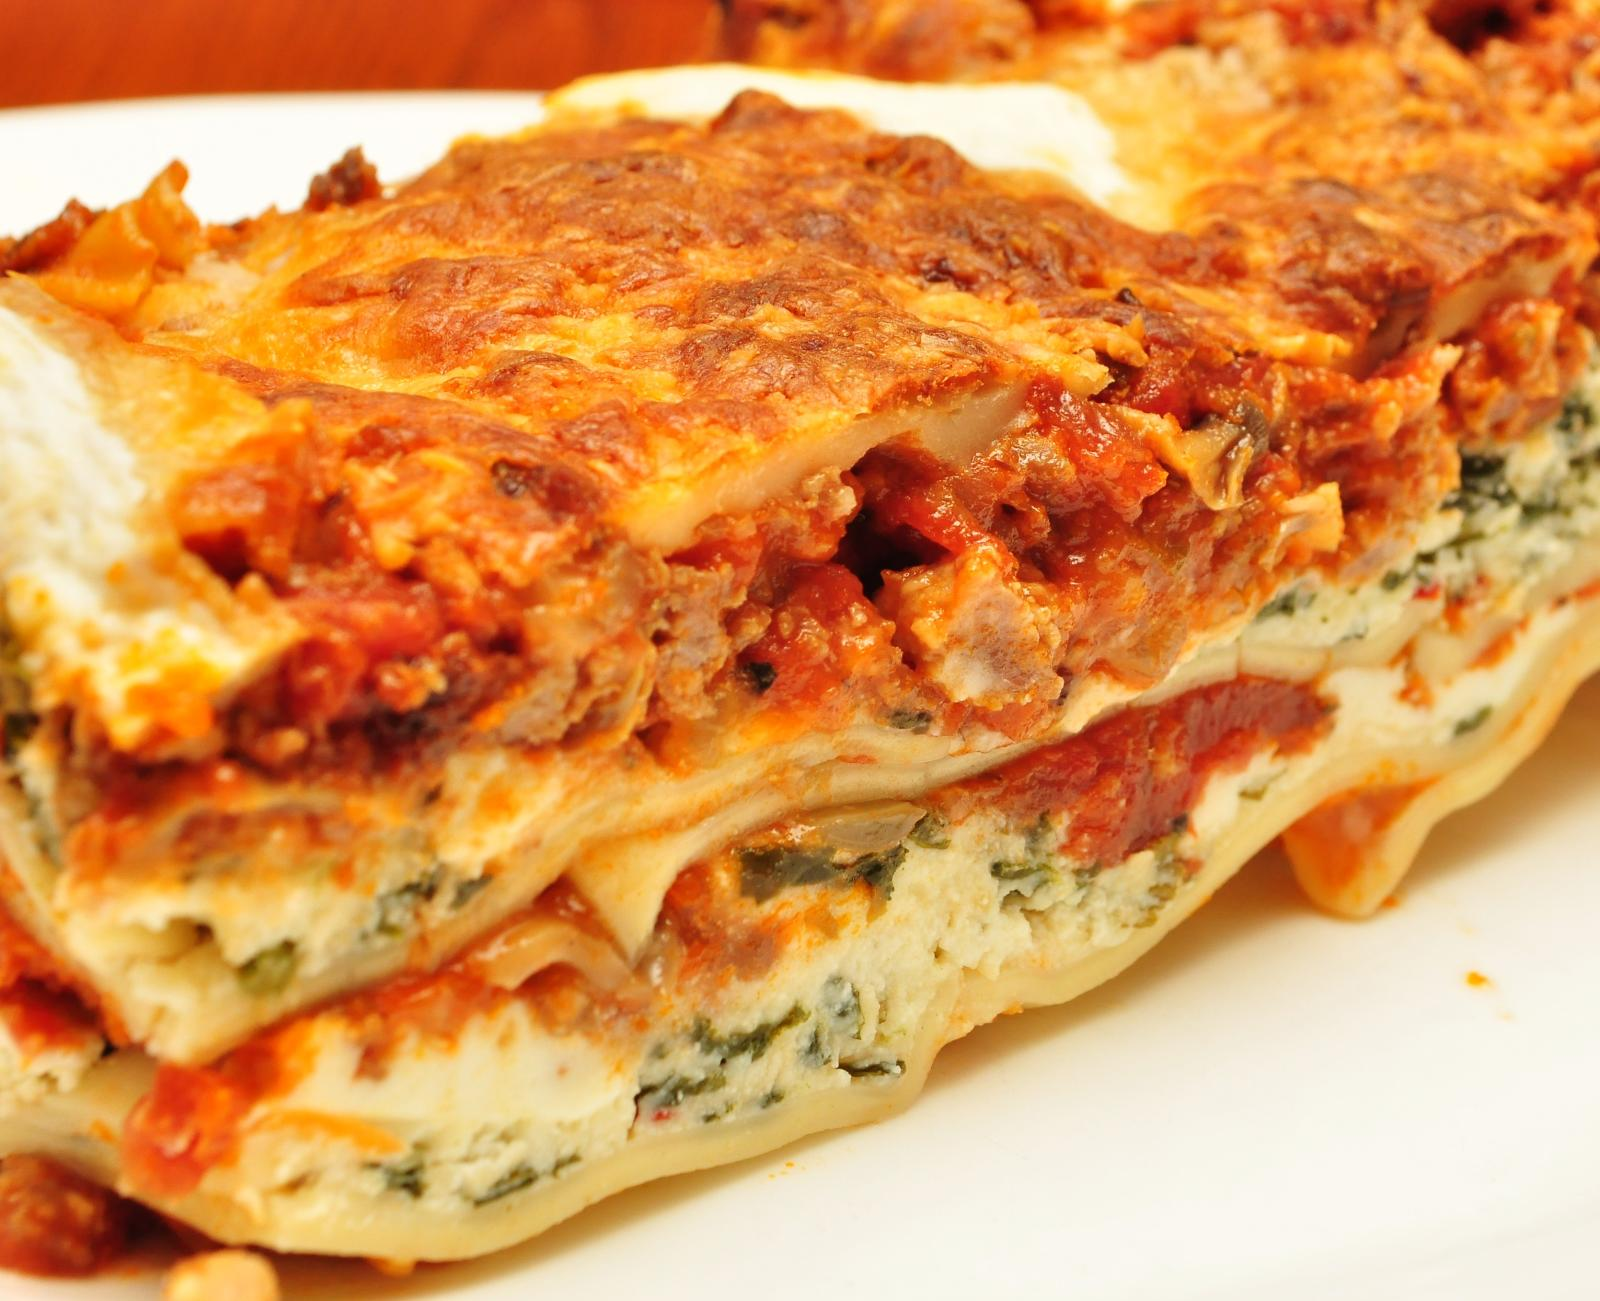 File:Lasagna (1).jpg - Wikimedia Commons